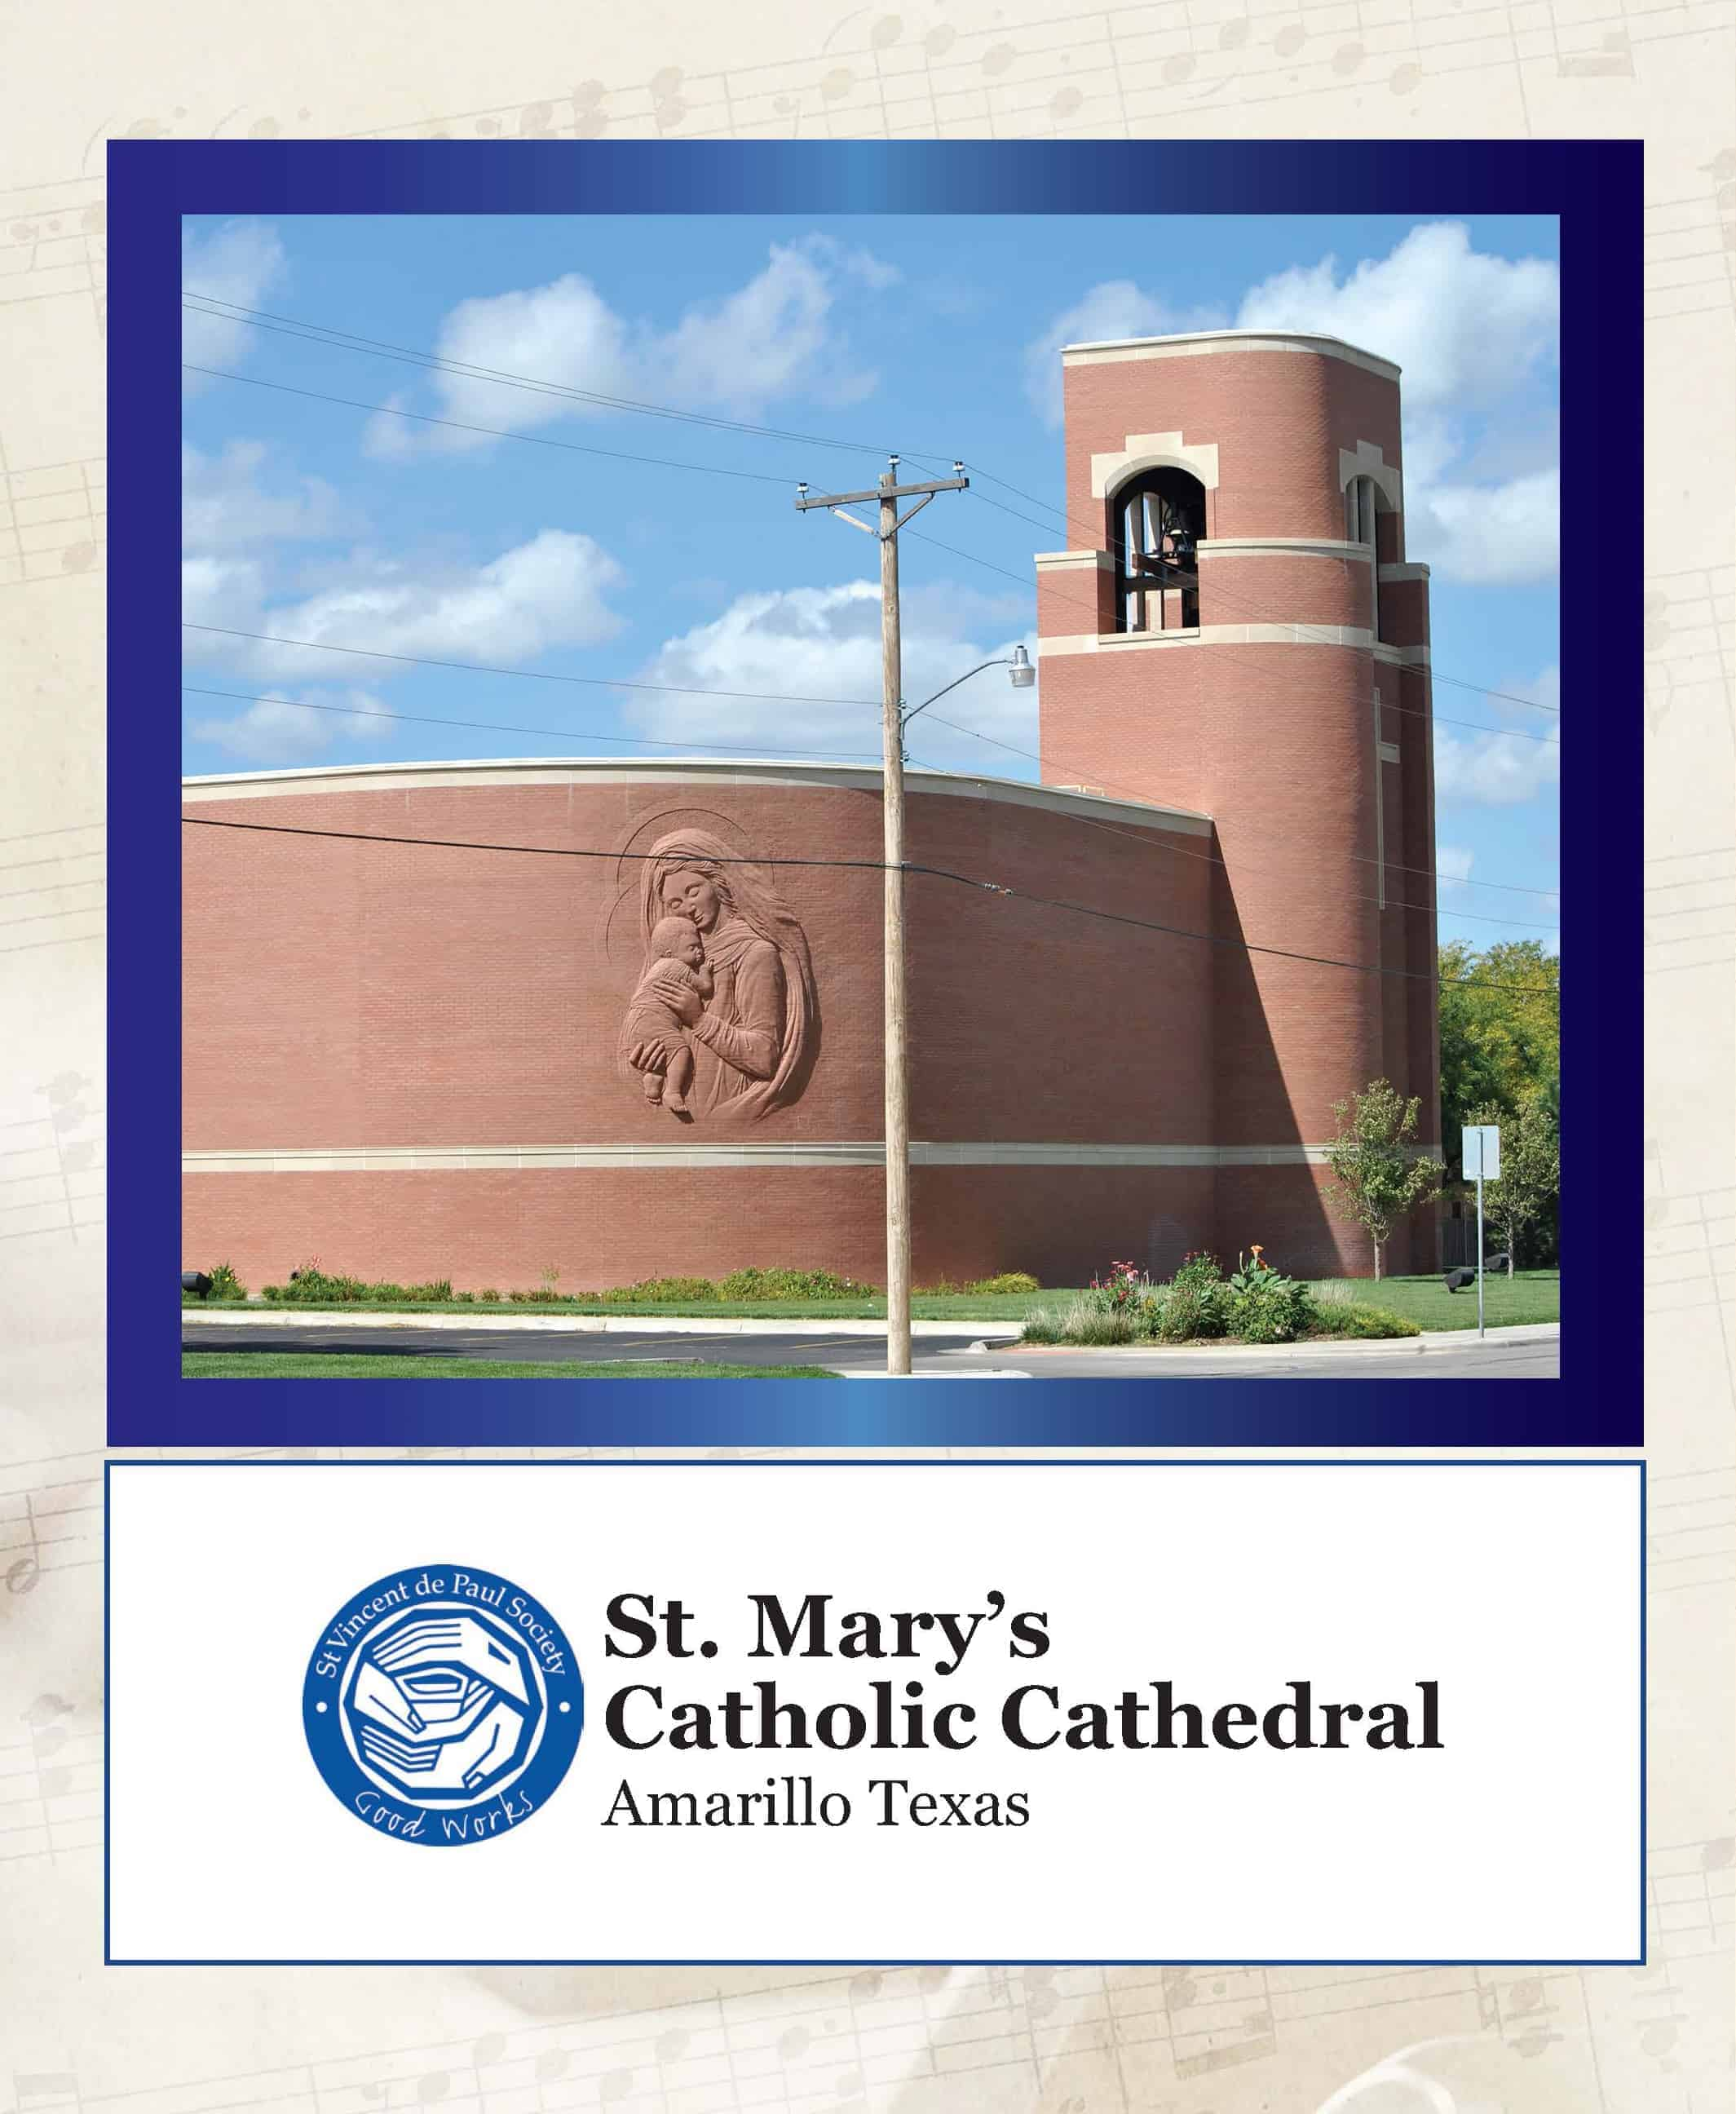 St. Mary's Catholic Catherdral